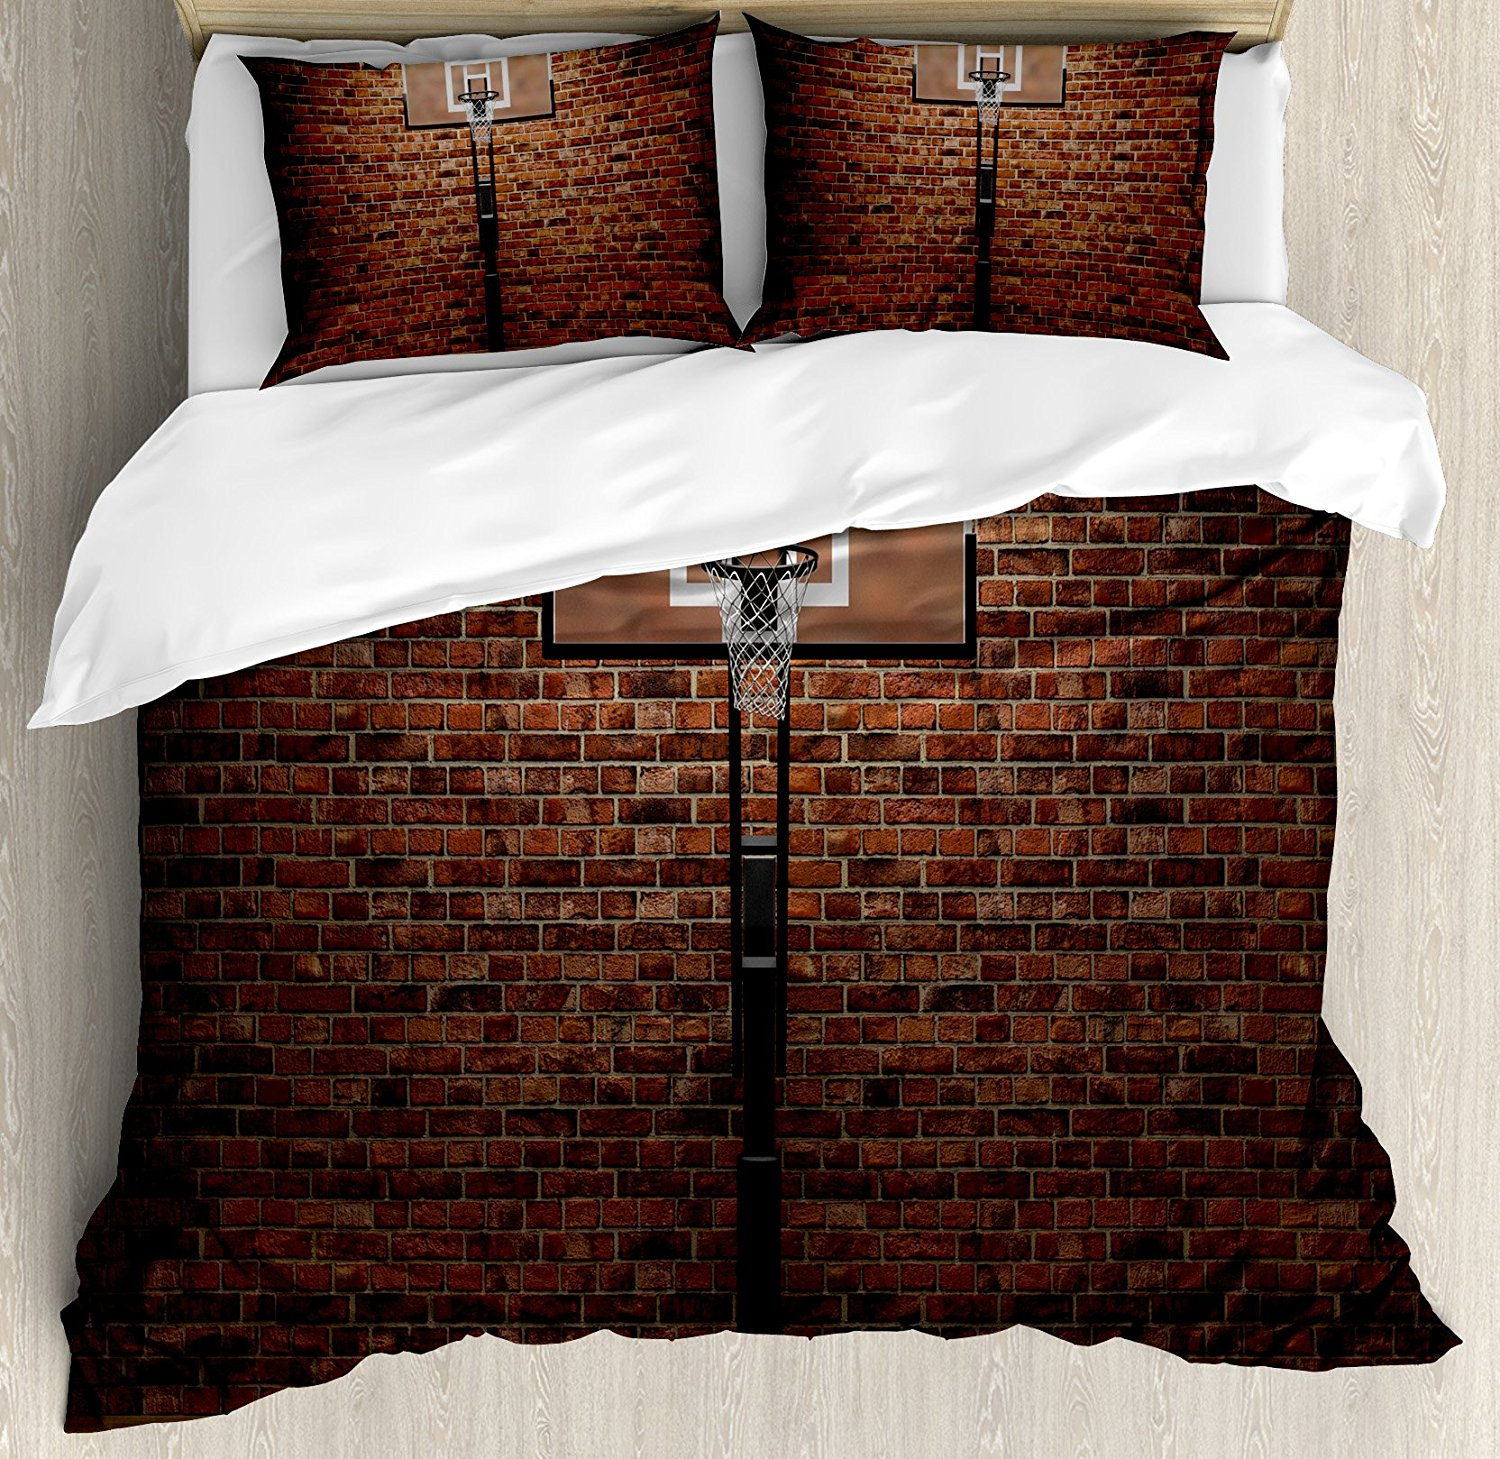 Basketball Duvet Cover Set Old Brick Wall and Basketball Hoop Rim Indoor Training Exercising Stadium Picture 4 Piece Bedding Set